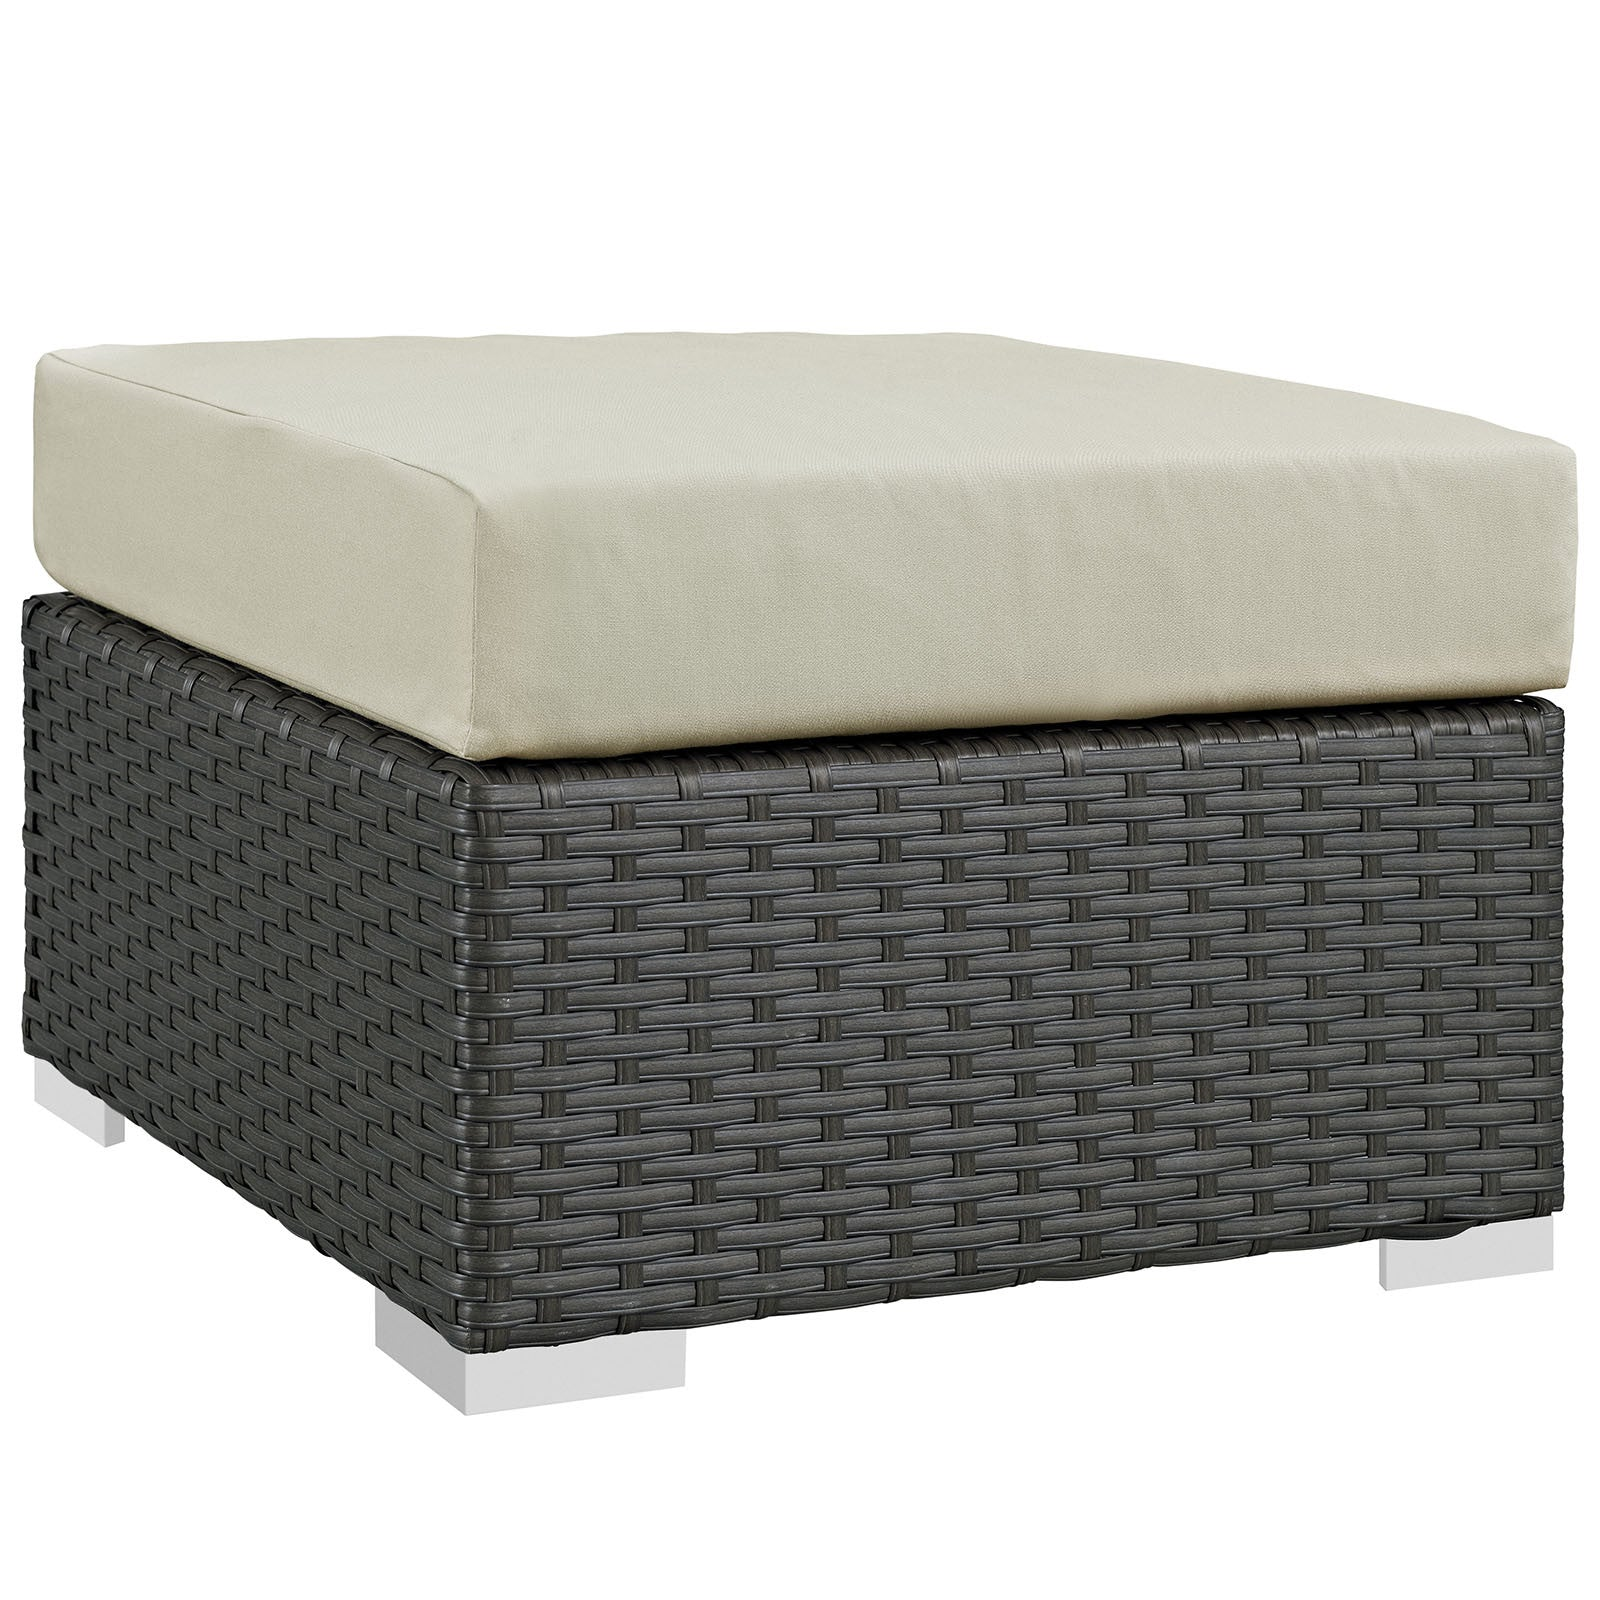 Sojourn Outdoor Patio Ottoman Taylor Ray Decor